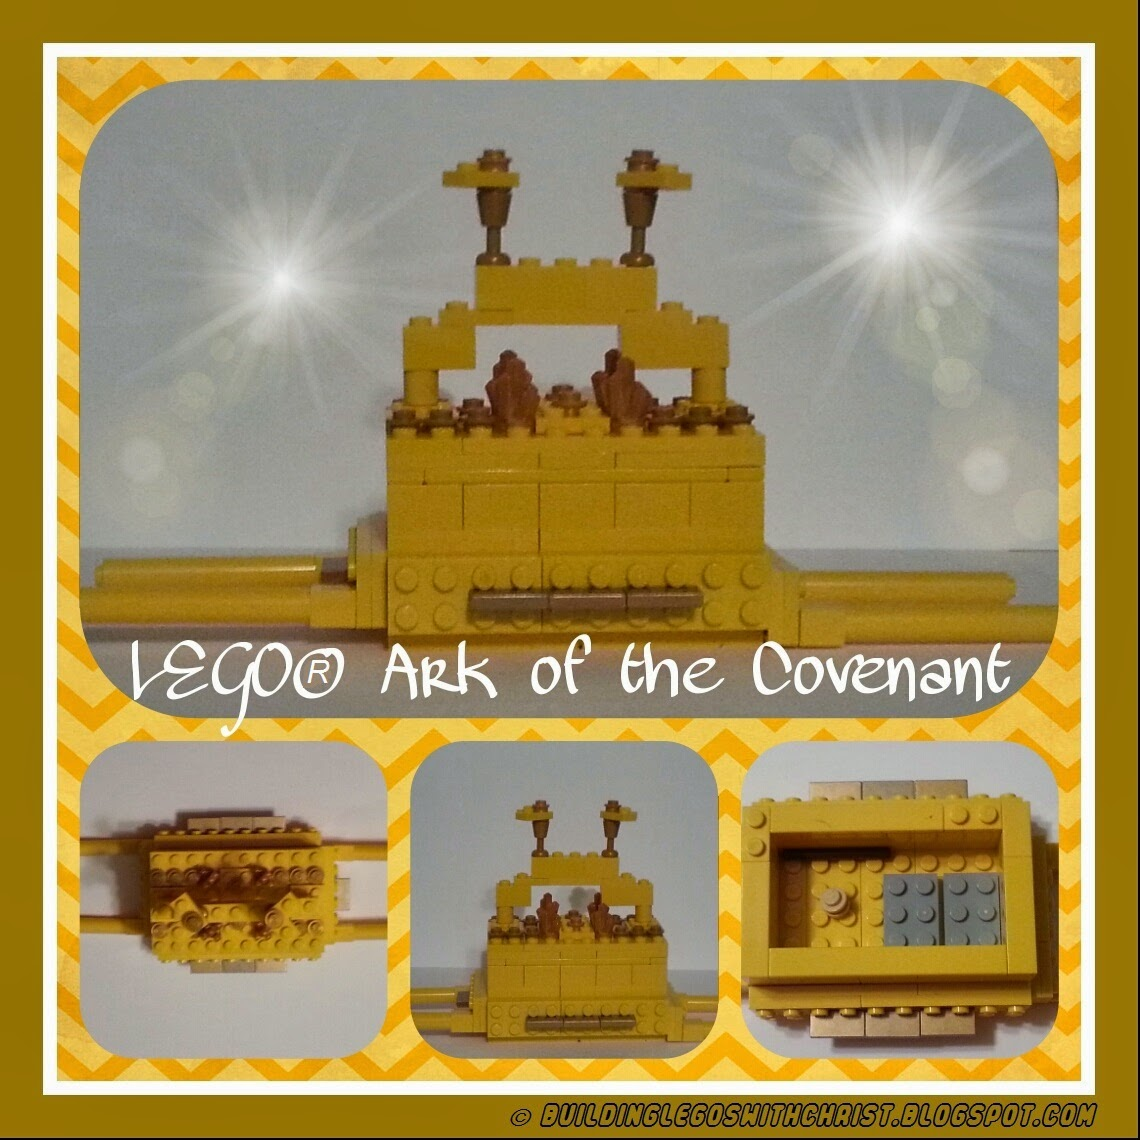 LEGO Ark of the Covenant Creation